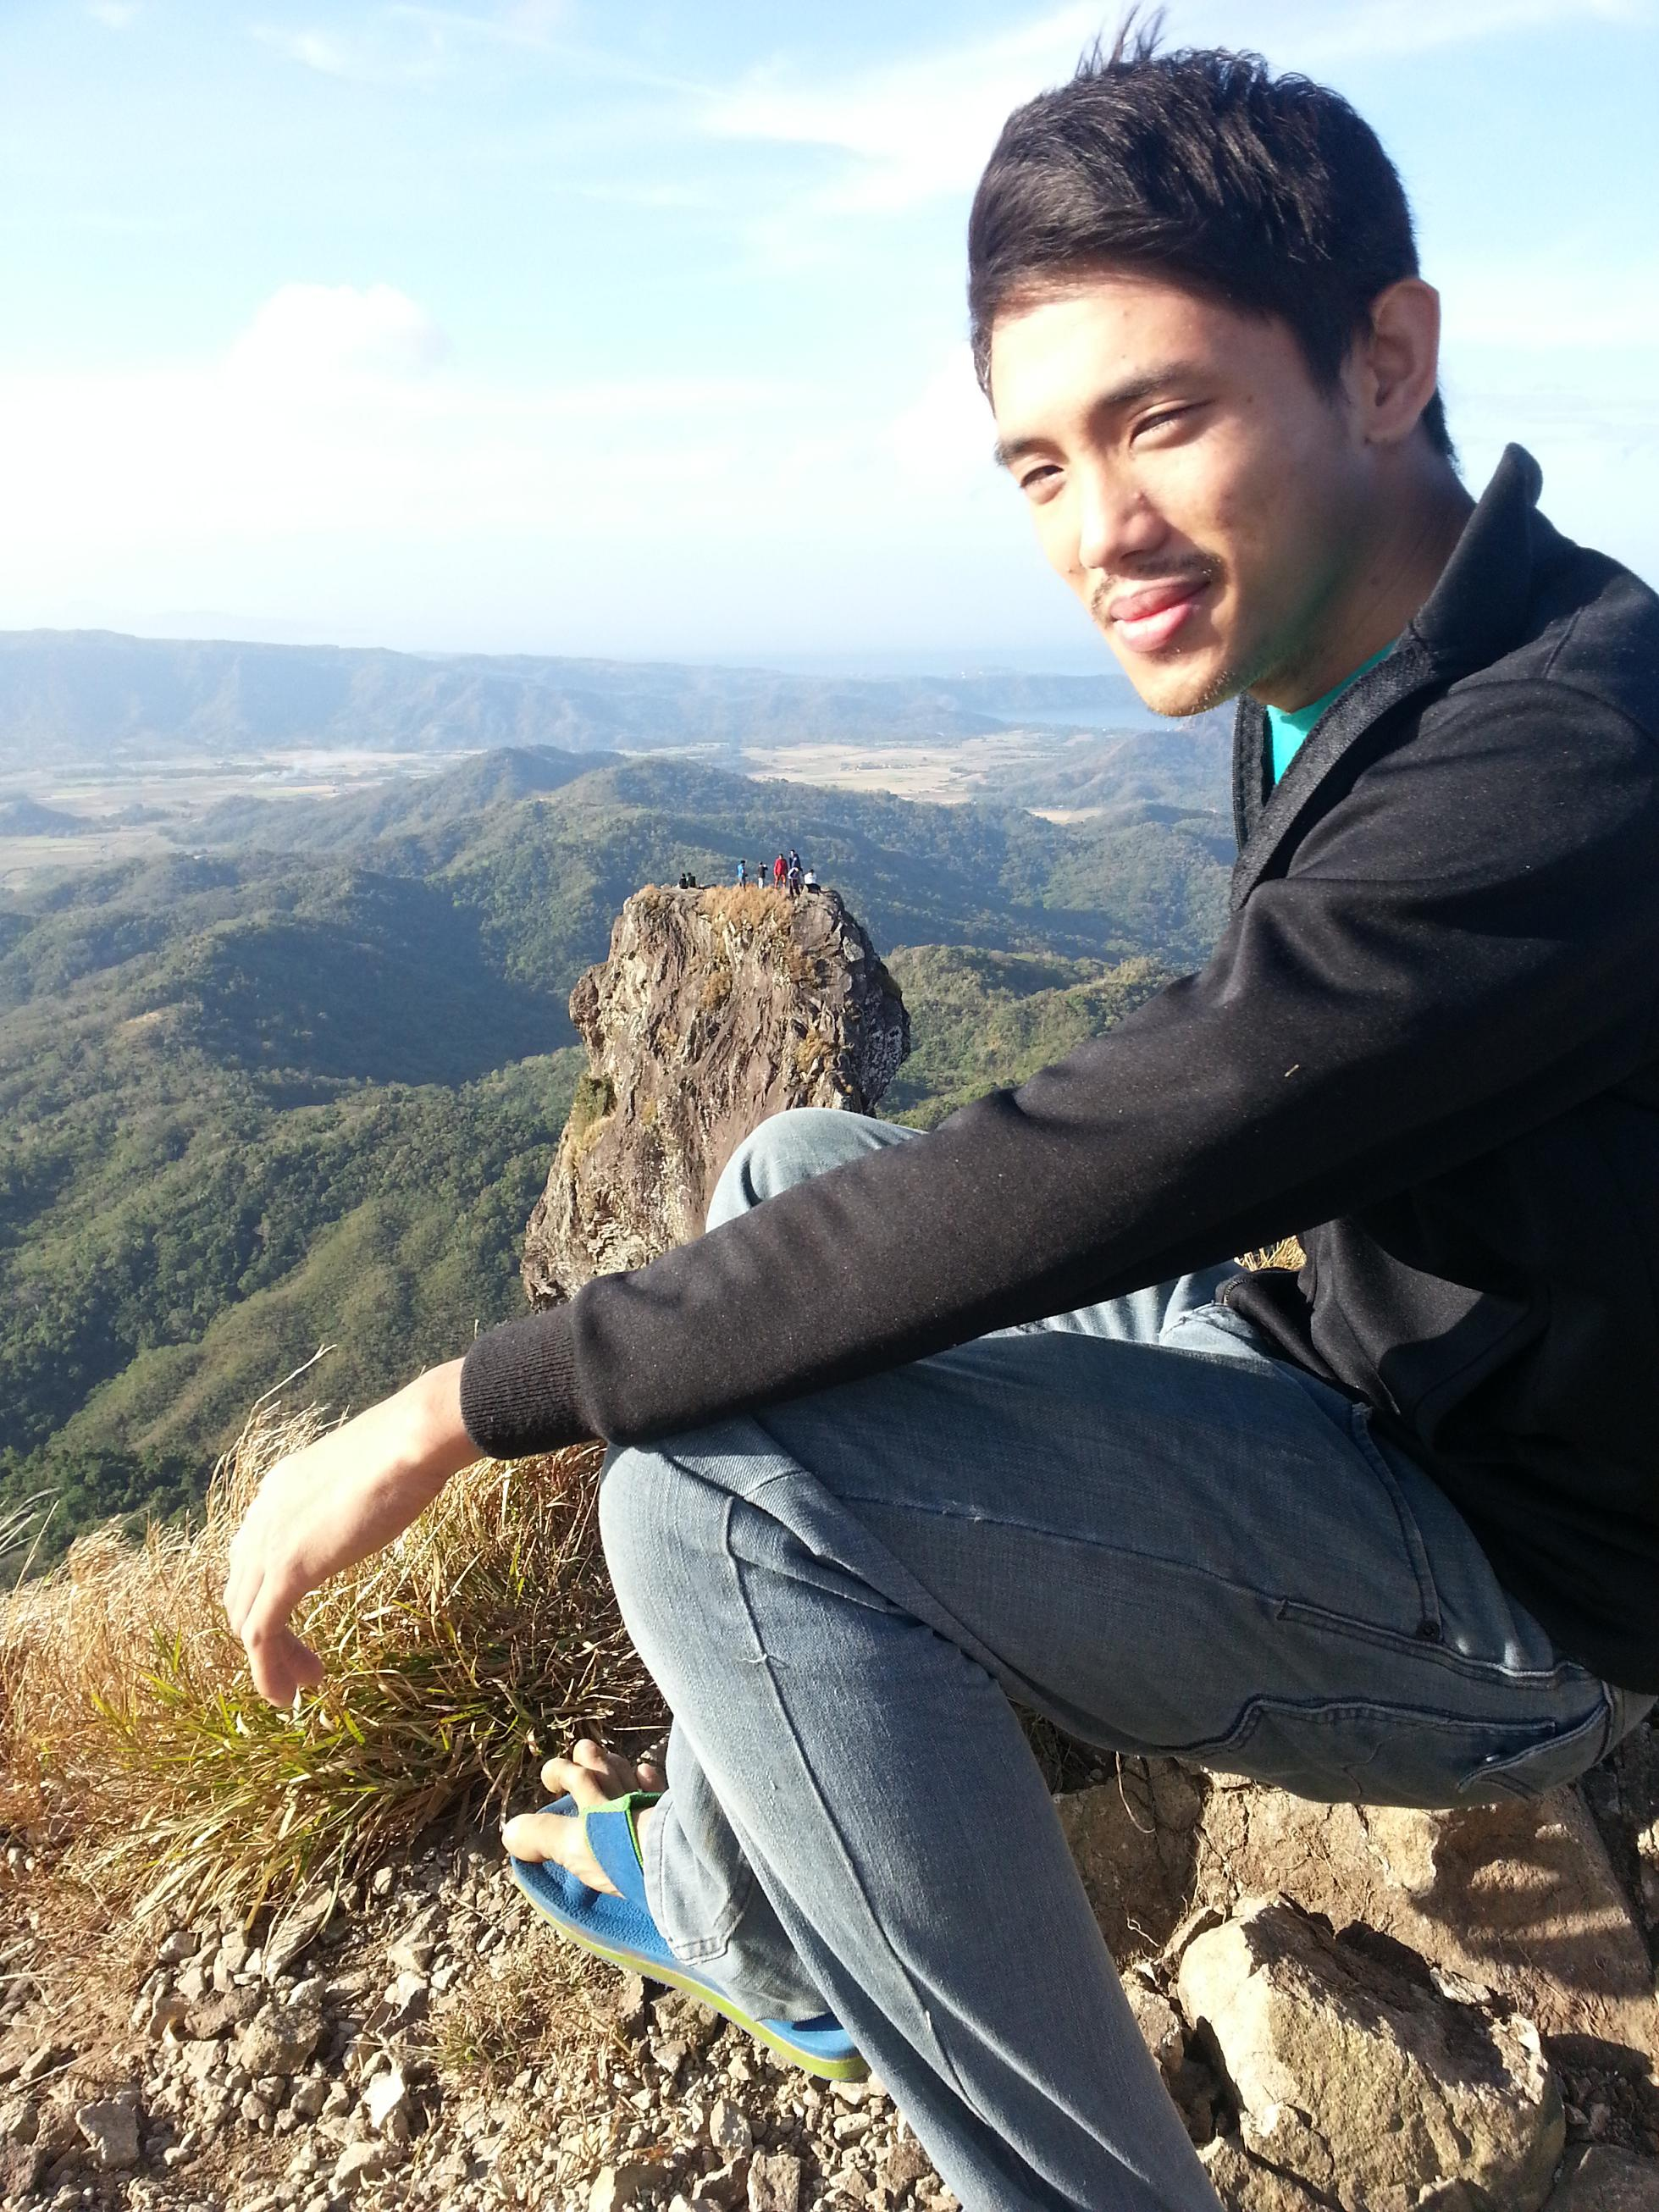 At  the Summit of Pico de Loro